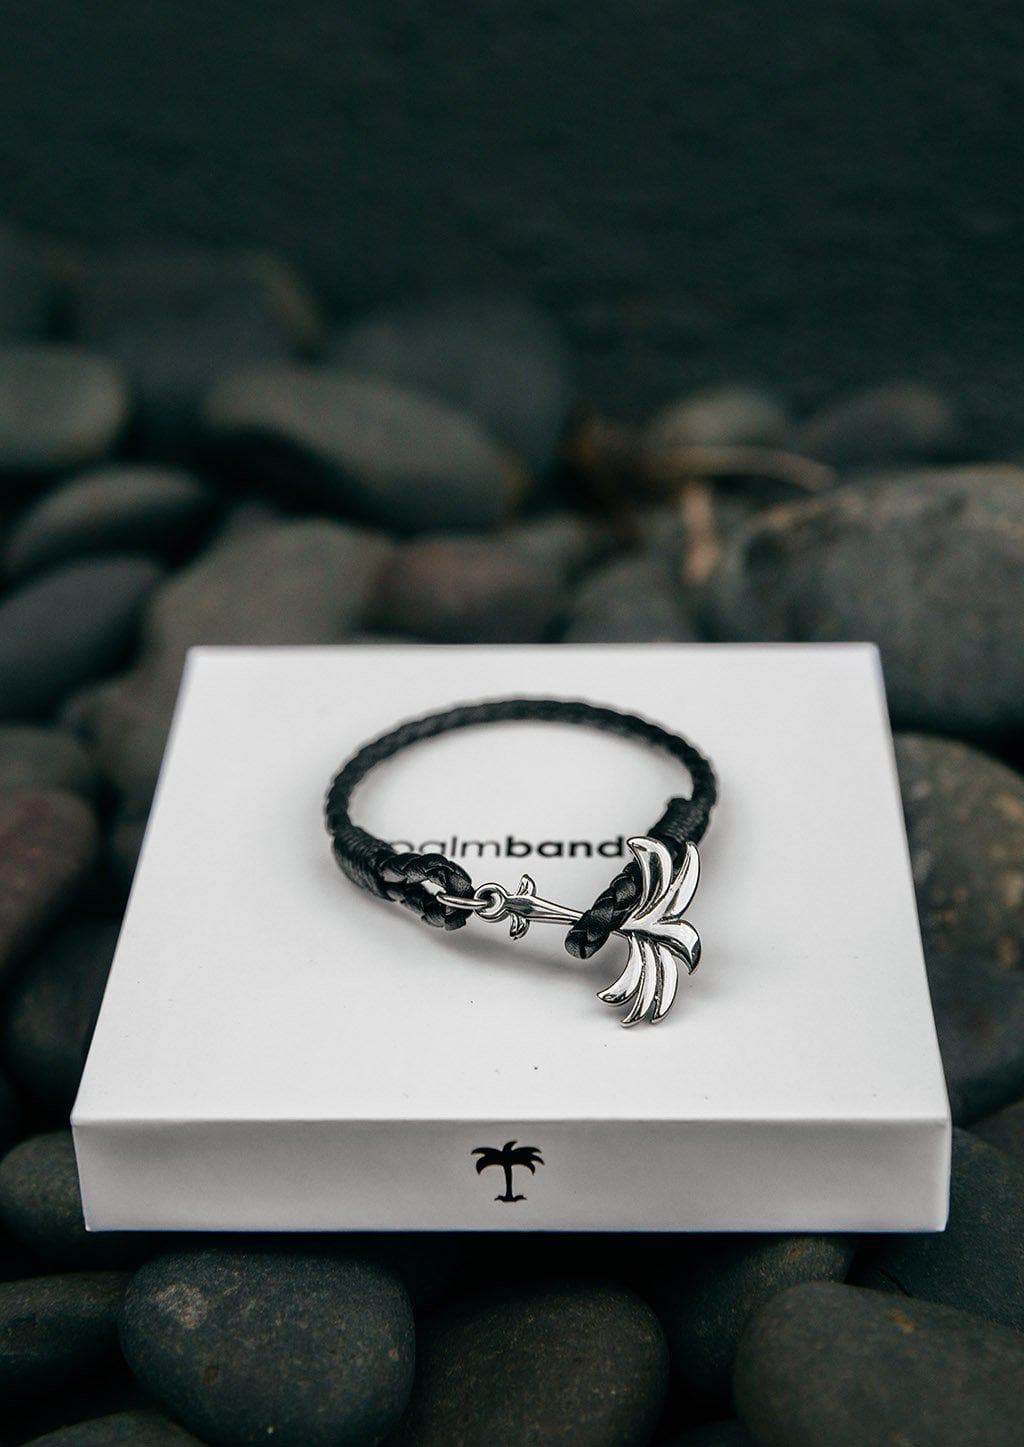 Starlight - Season two Palm anchor bracelet with black leather. Bracelet on box.